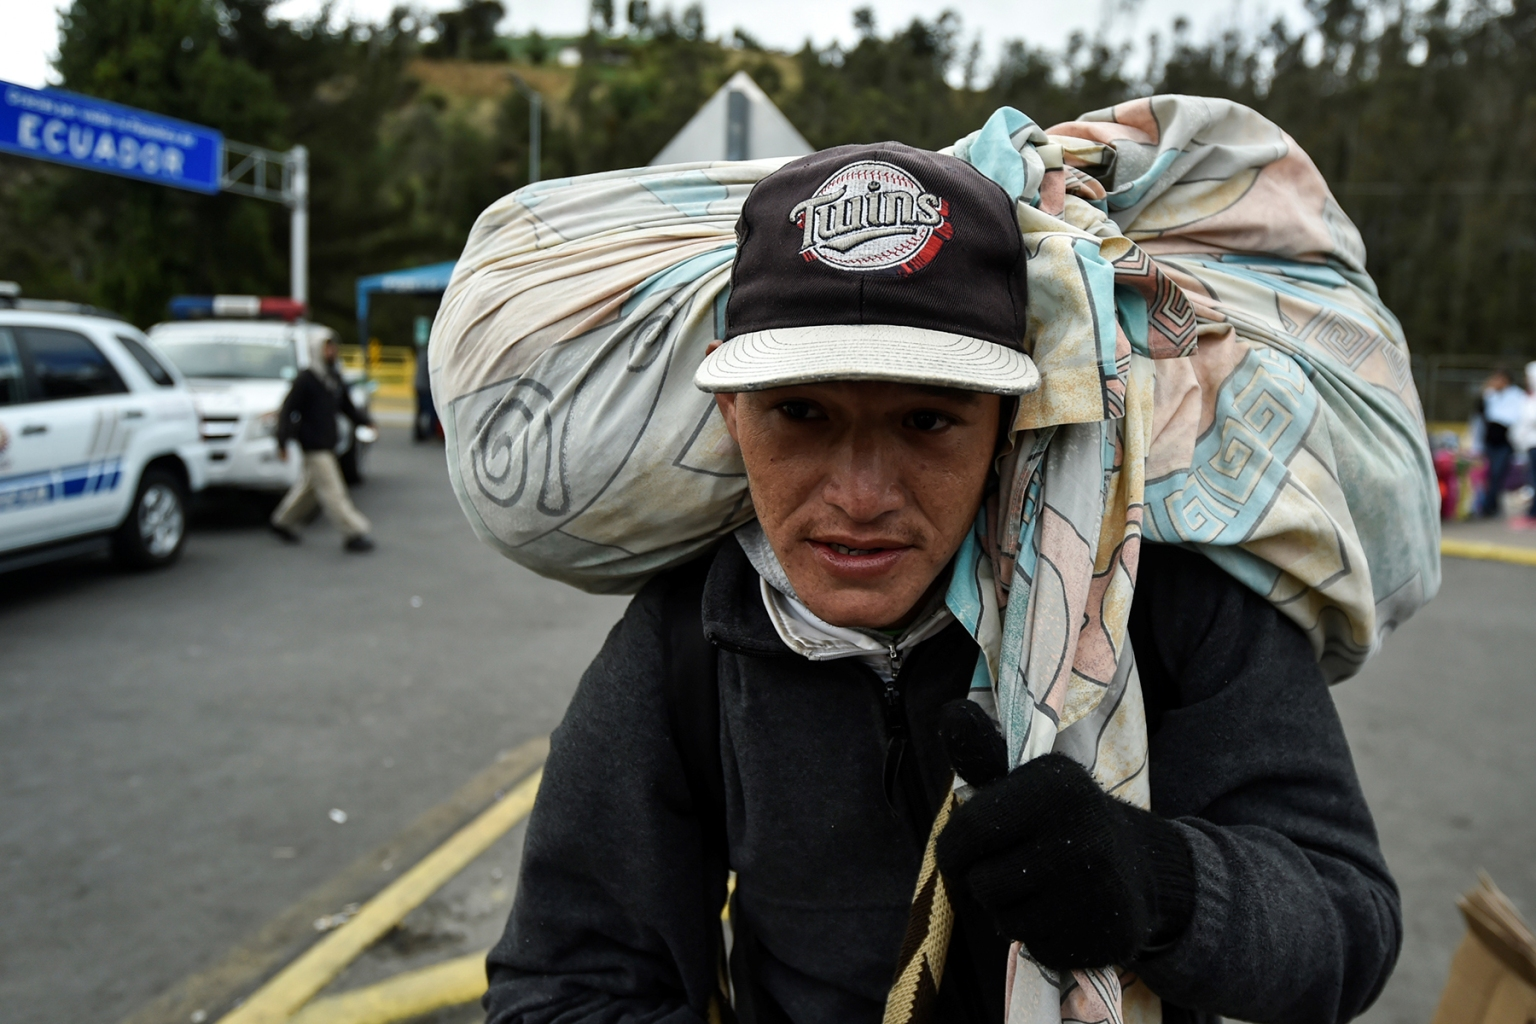 A Venezuelan migrant outside the Ecuadorean migration office at the Rumichaca International Bridge between Tulcan, Ecuador, and Ipiales, Colombia, on Aug. 20. Colombia's government expressed concern last week that tightened Ecuadorian entry requirements for Venezuelans would leave thousands stranded in Colombia. LUIS ROBAYO/AFP/Getty Images